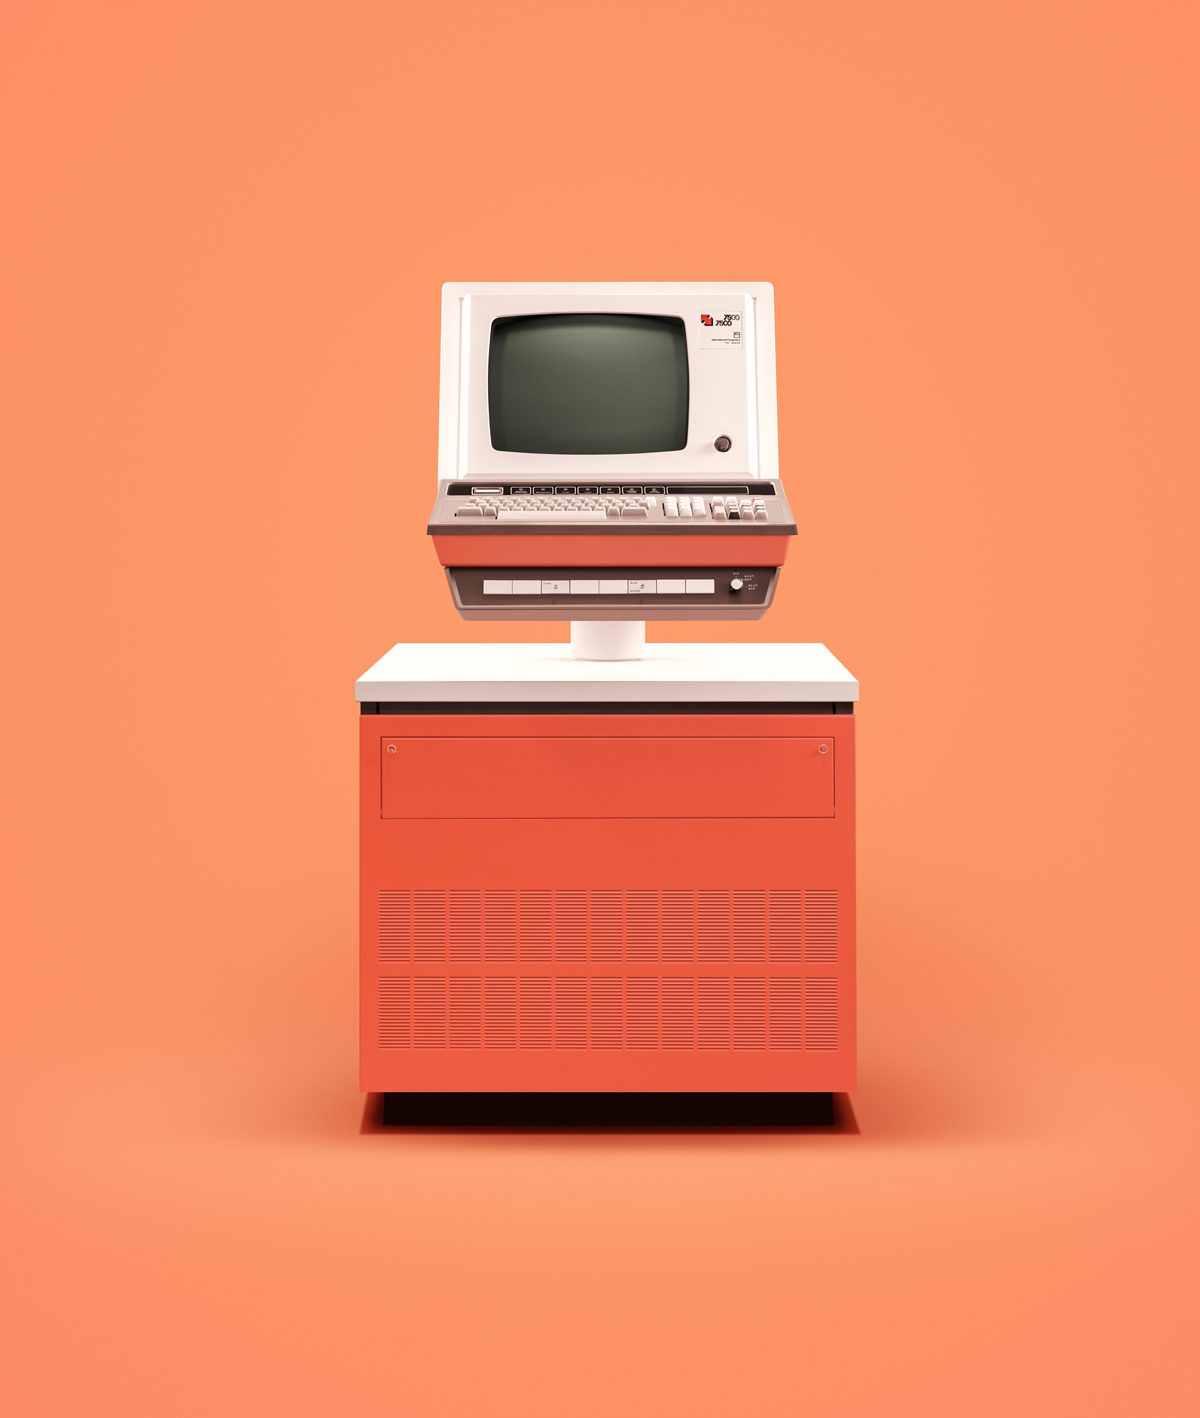 Old computers are made cool again in this photography